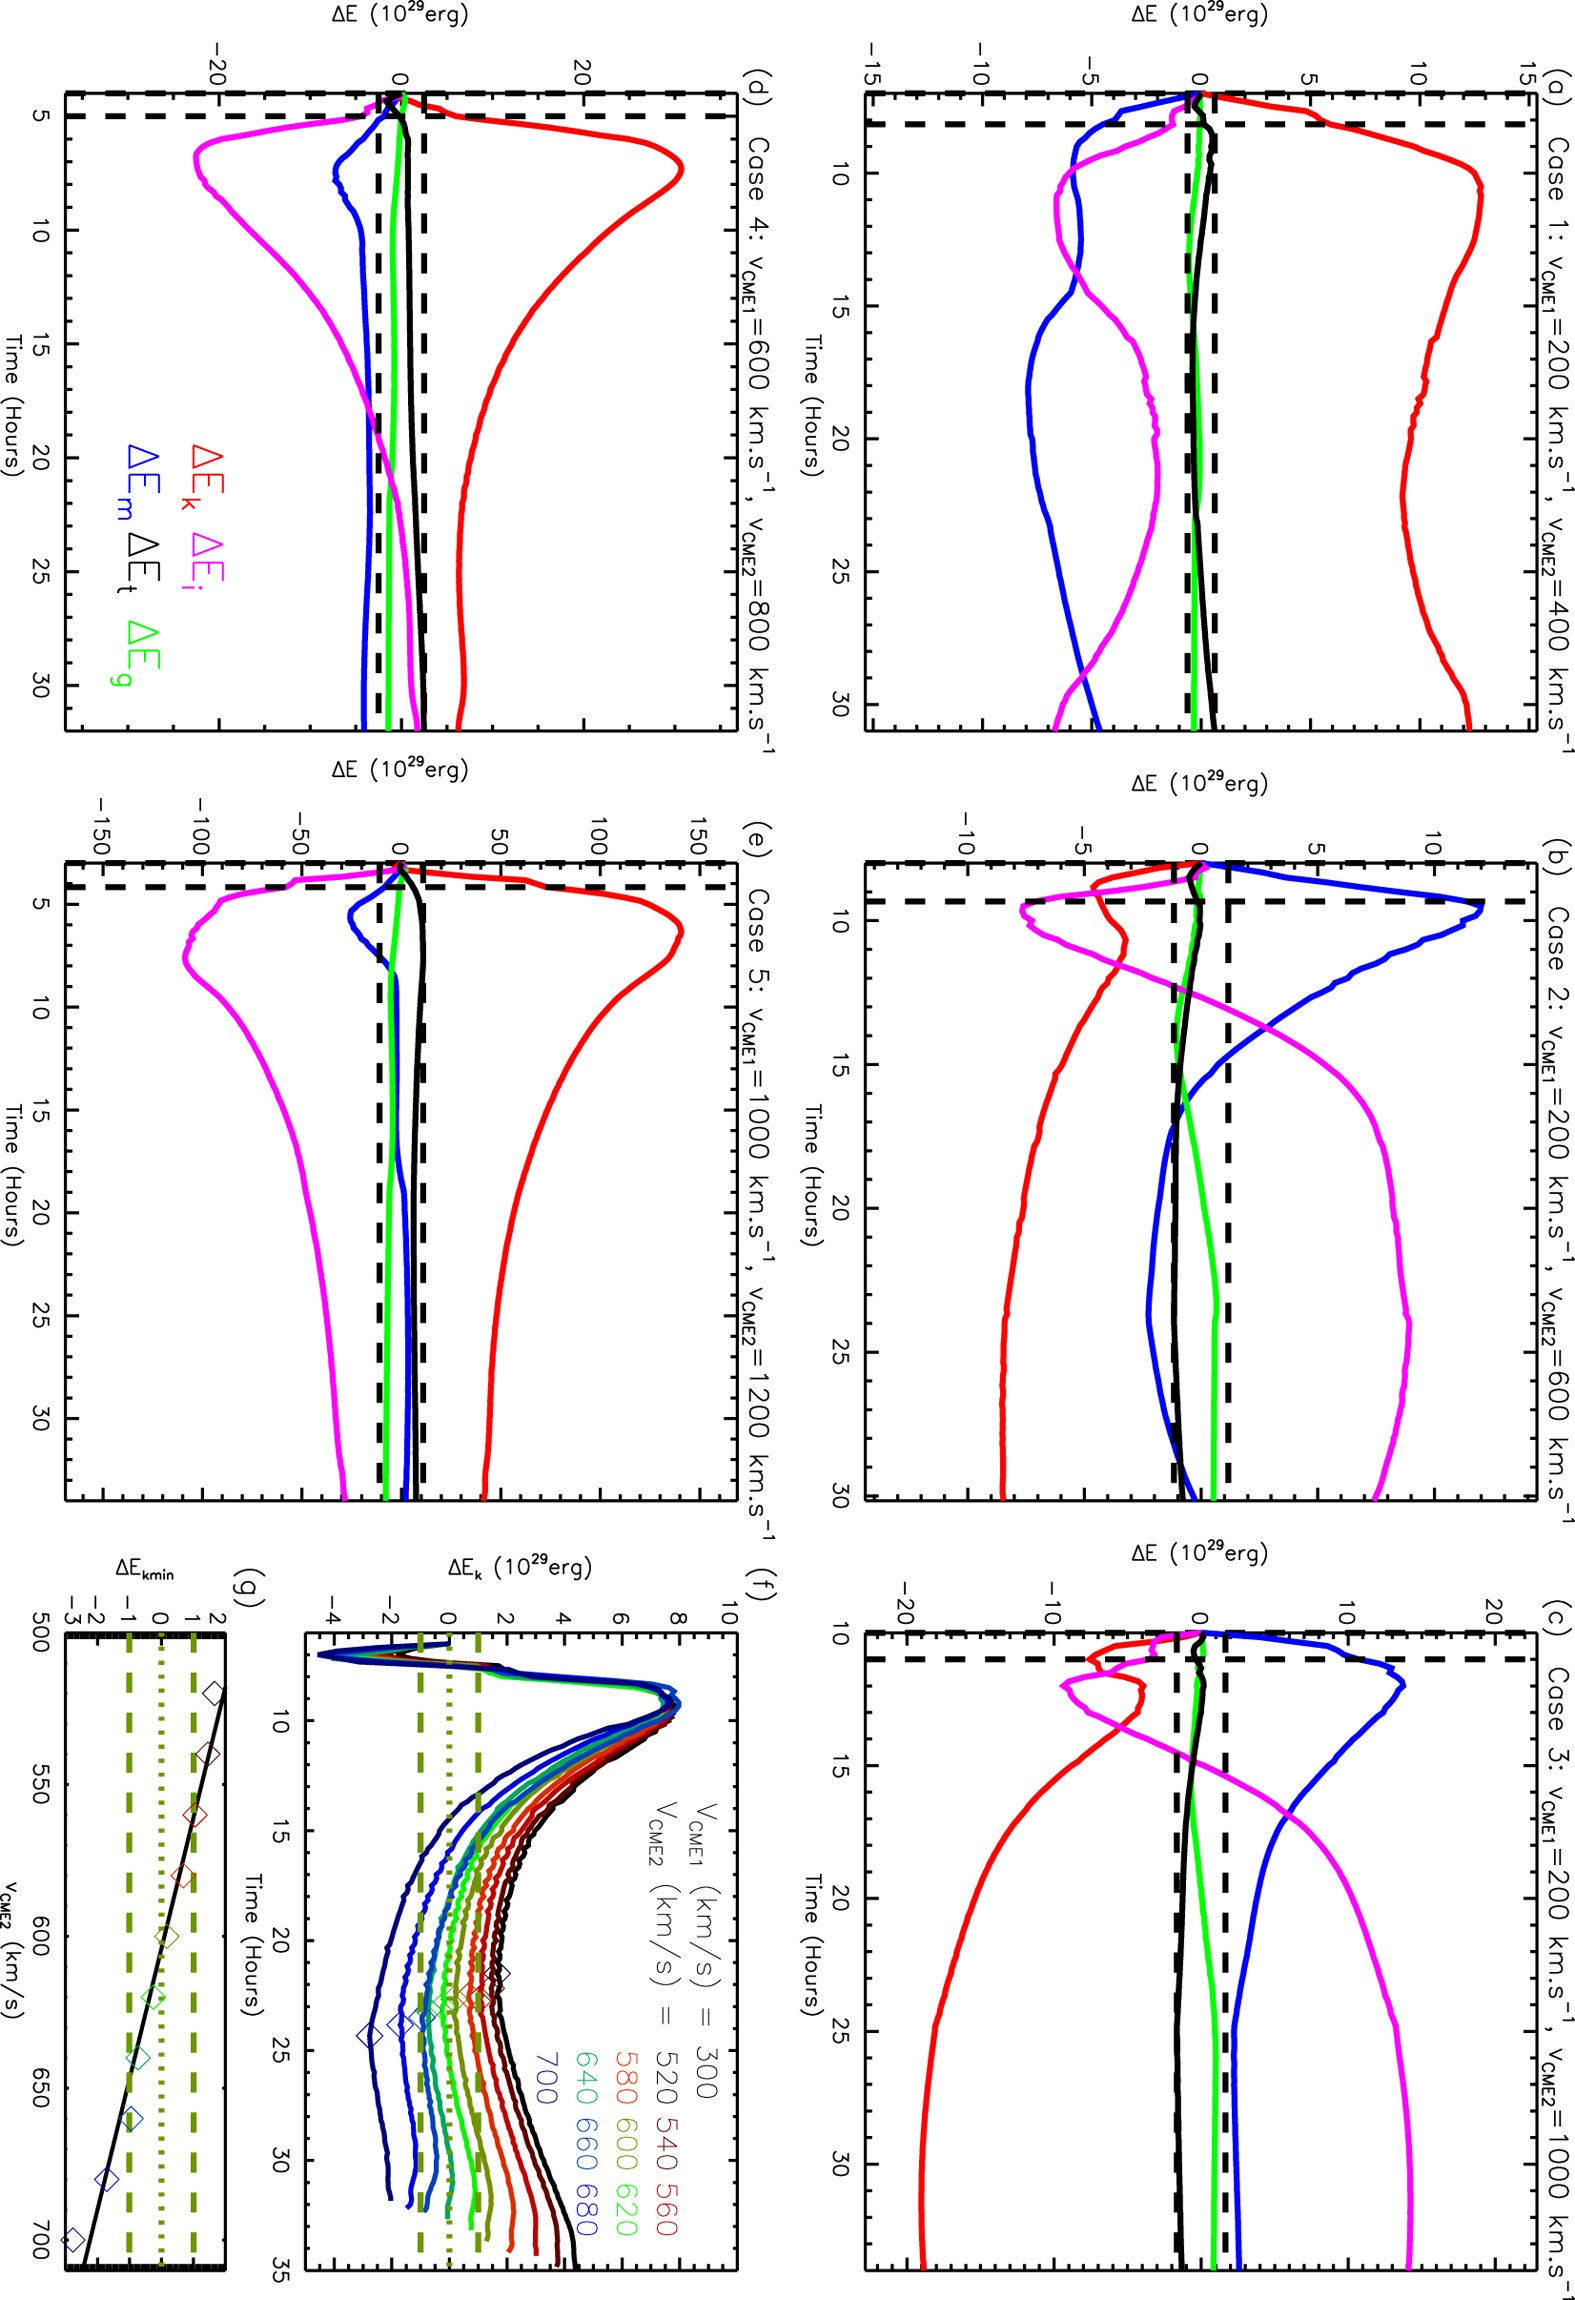 Turn On The Super Elastic Collision Nature Of Coronal Mass